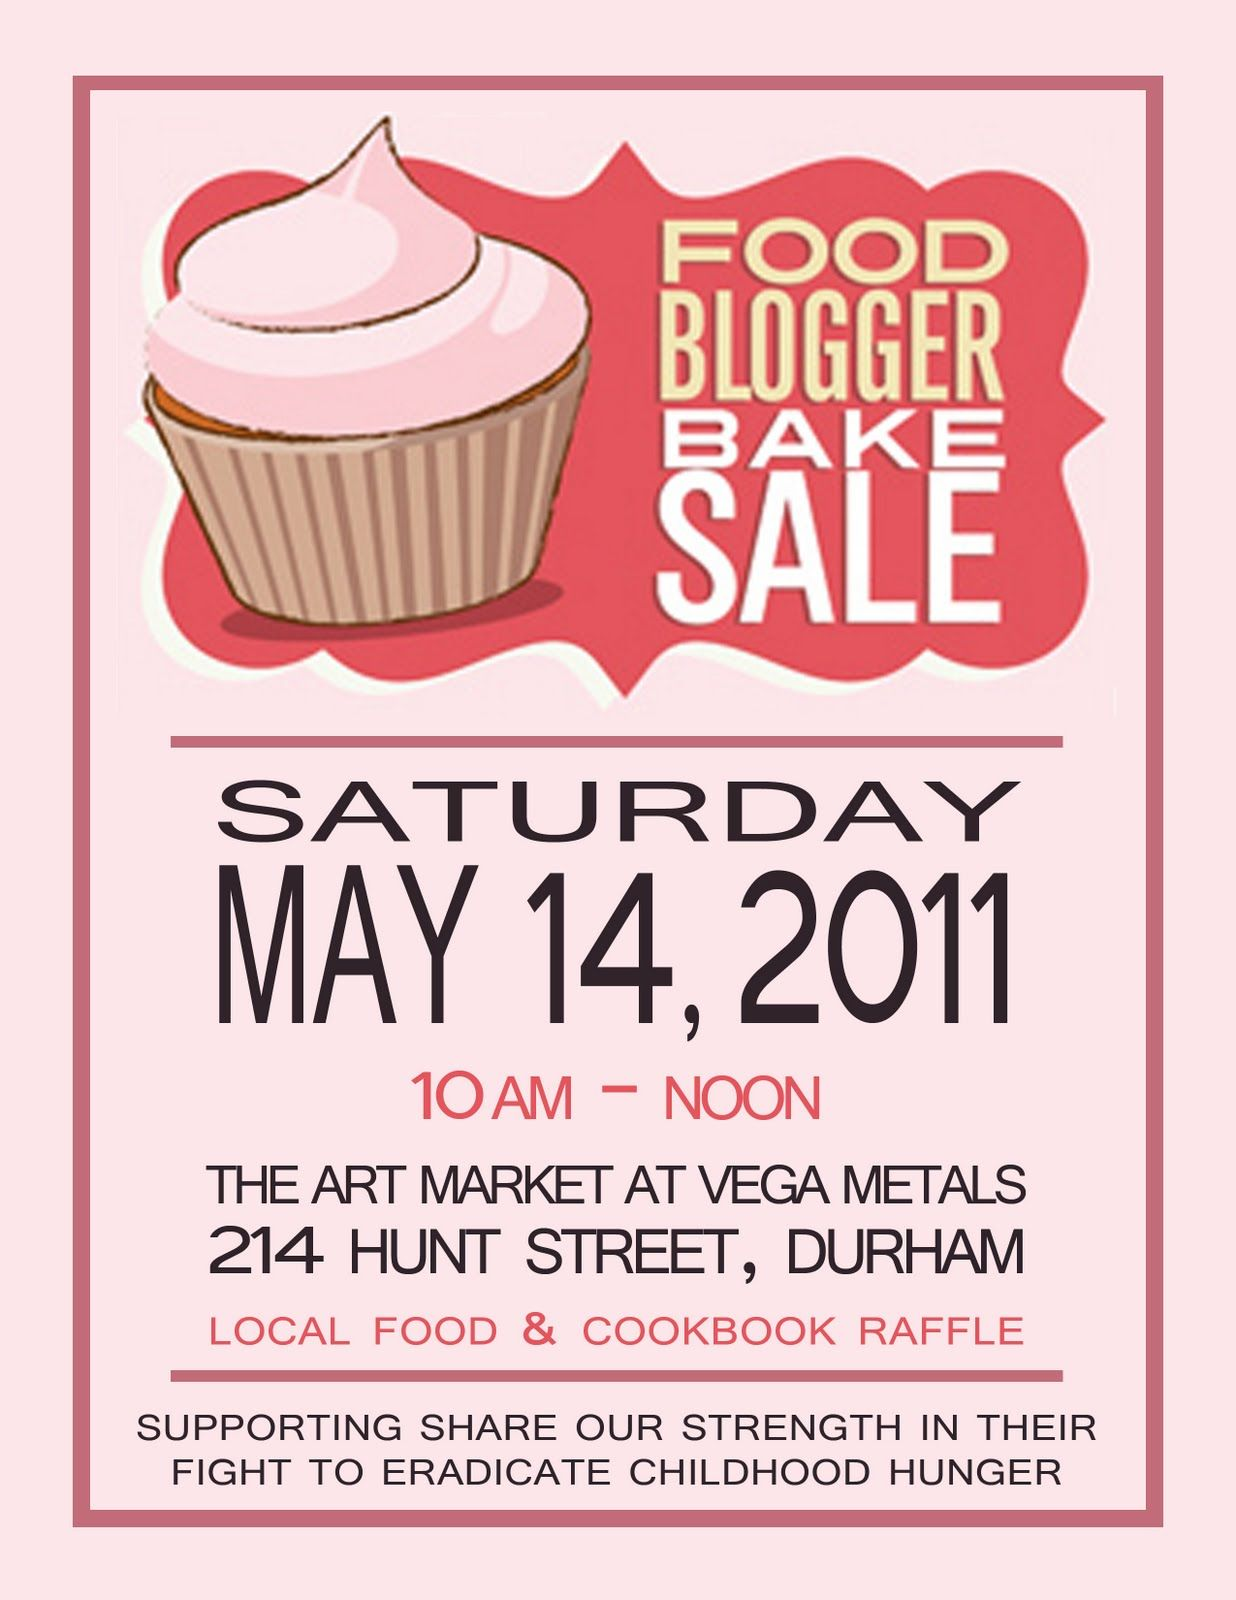 creative bakery flyers - Google Search | Bake sale flyer ...